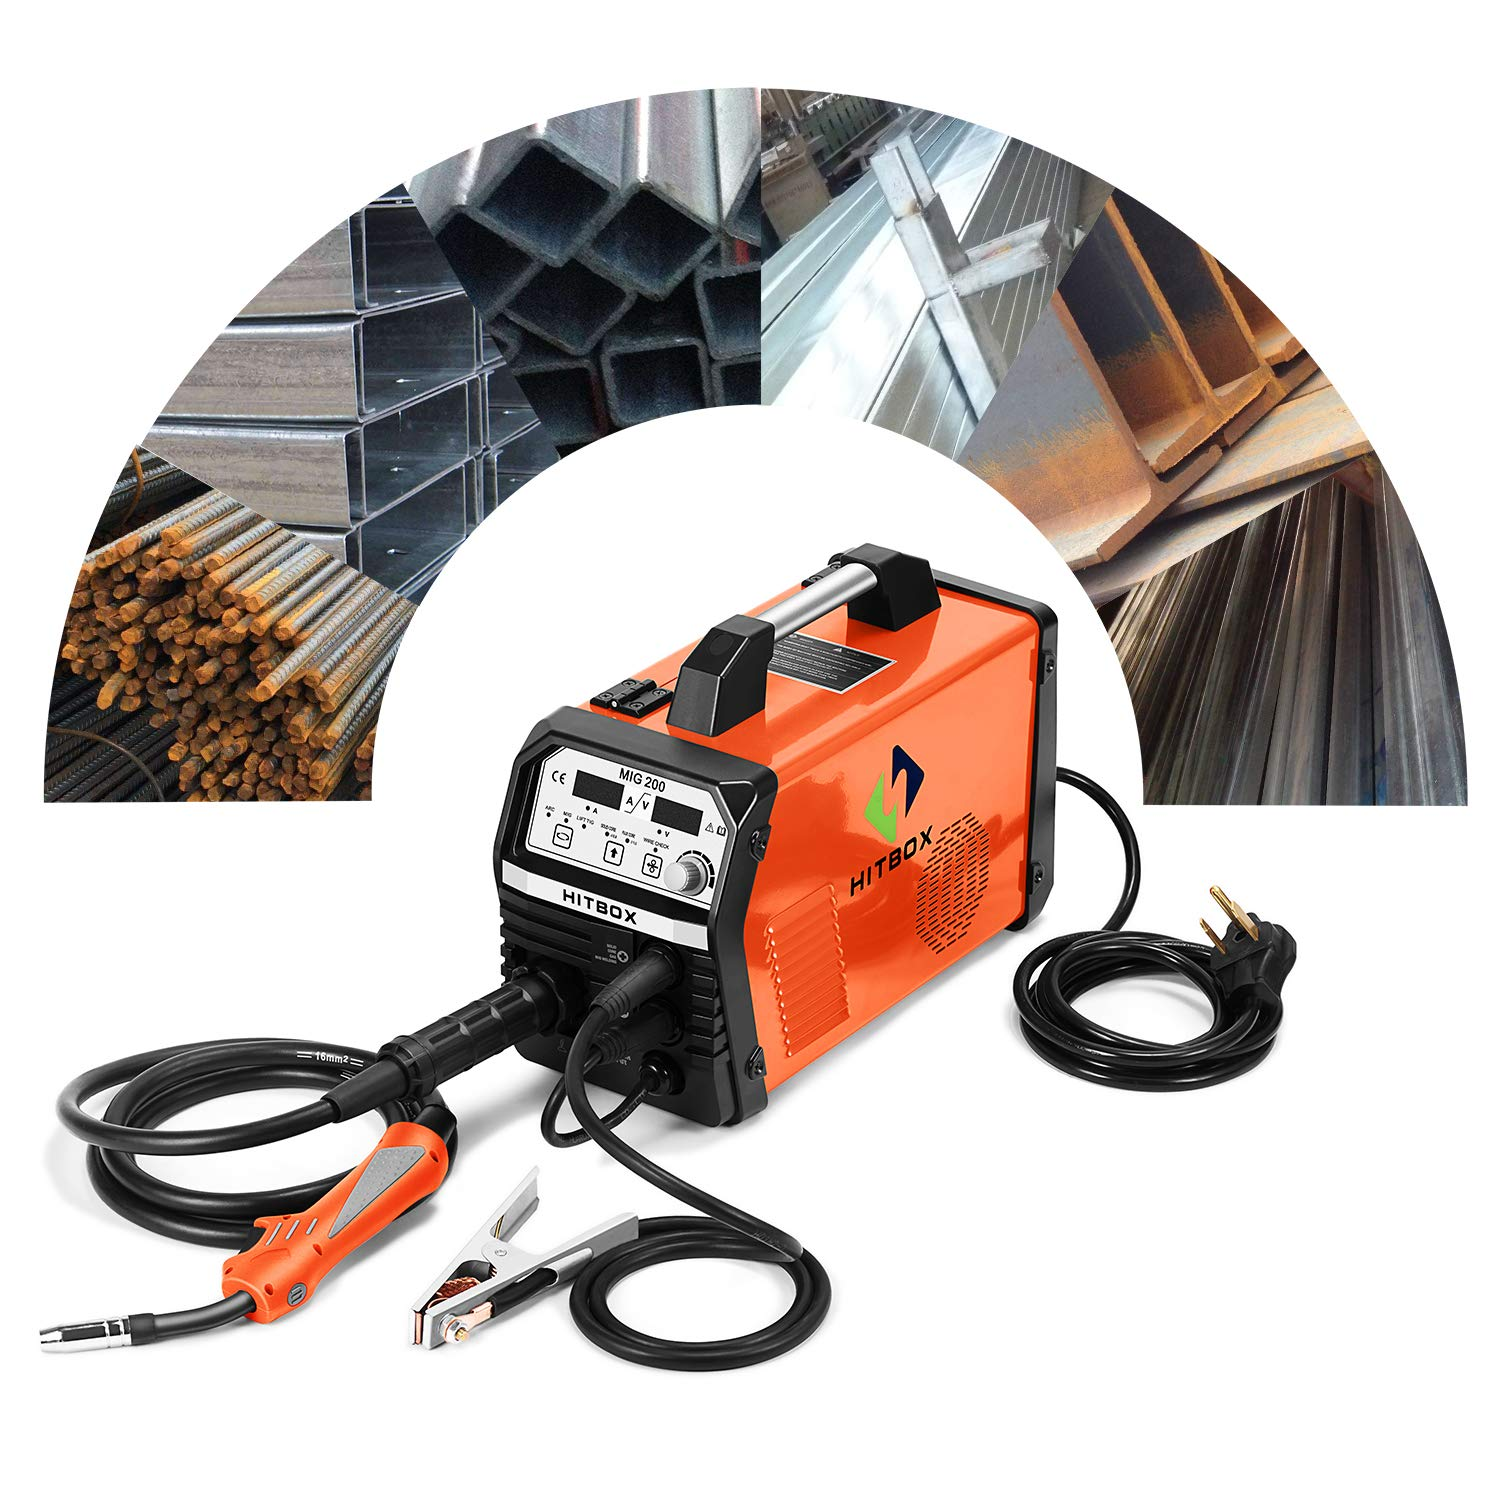 HITBOX MIG Welder 200Amp Inverter MIG ARC Lift TIG Gas Gasless 4 in 1 Multifunction MIG Welding Mahcine 220V Flux Cored Wire Solid Core Wire Welding Equipment SHENZHEN UNITWELD WELDING AND MOTOR MIG120